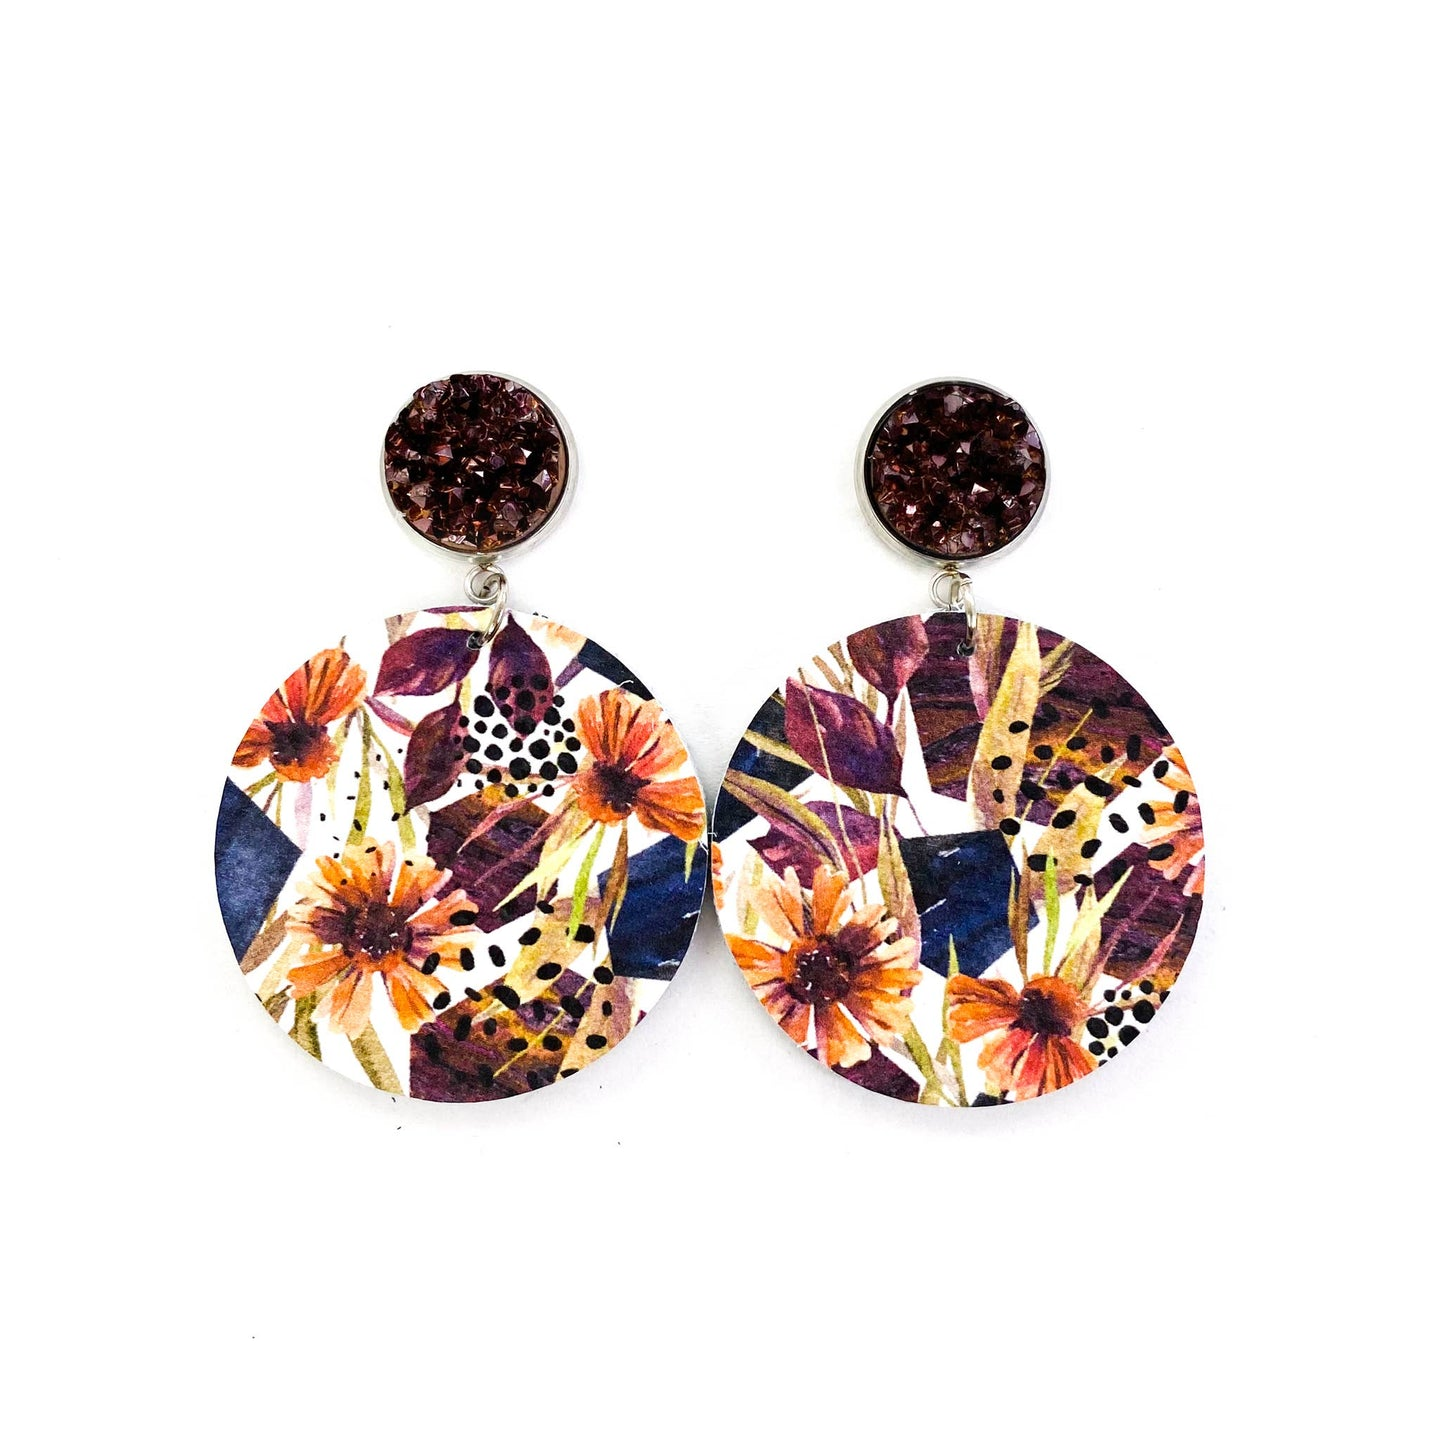 Druzy Stud & Fall Floral Autumn Leather Earrings